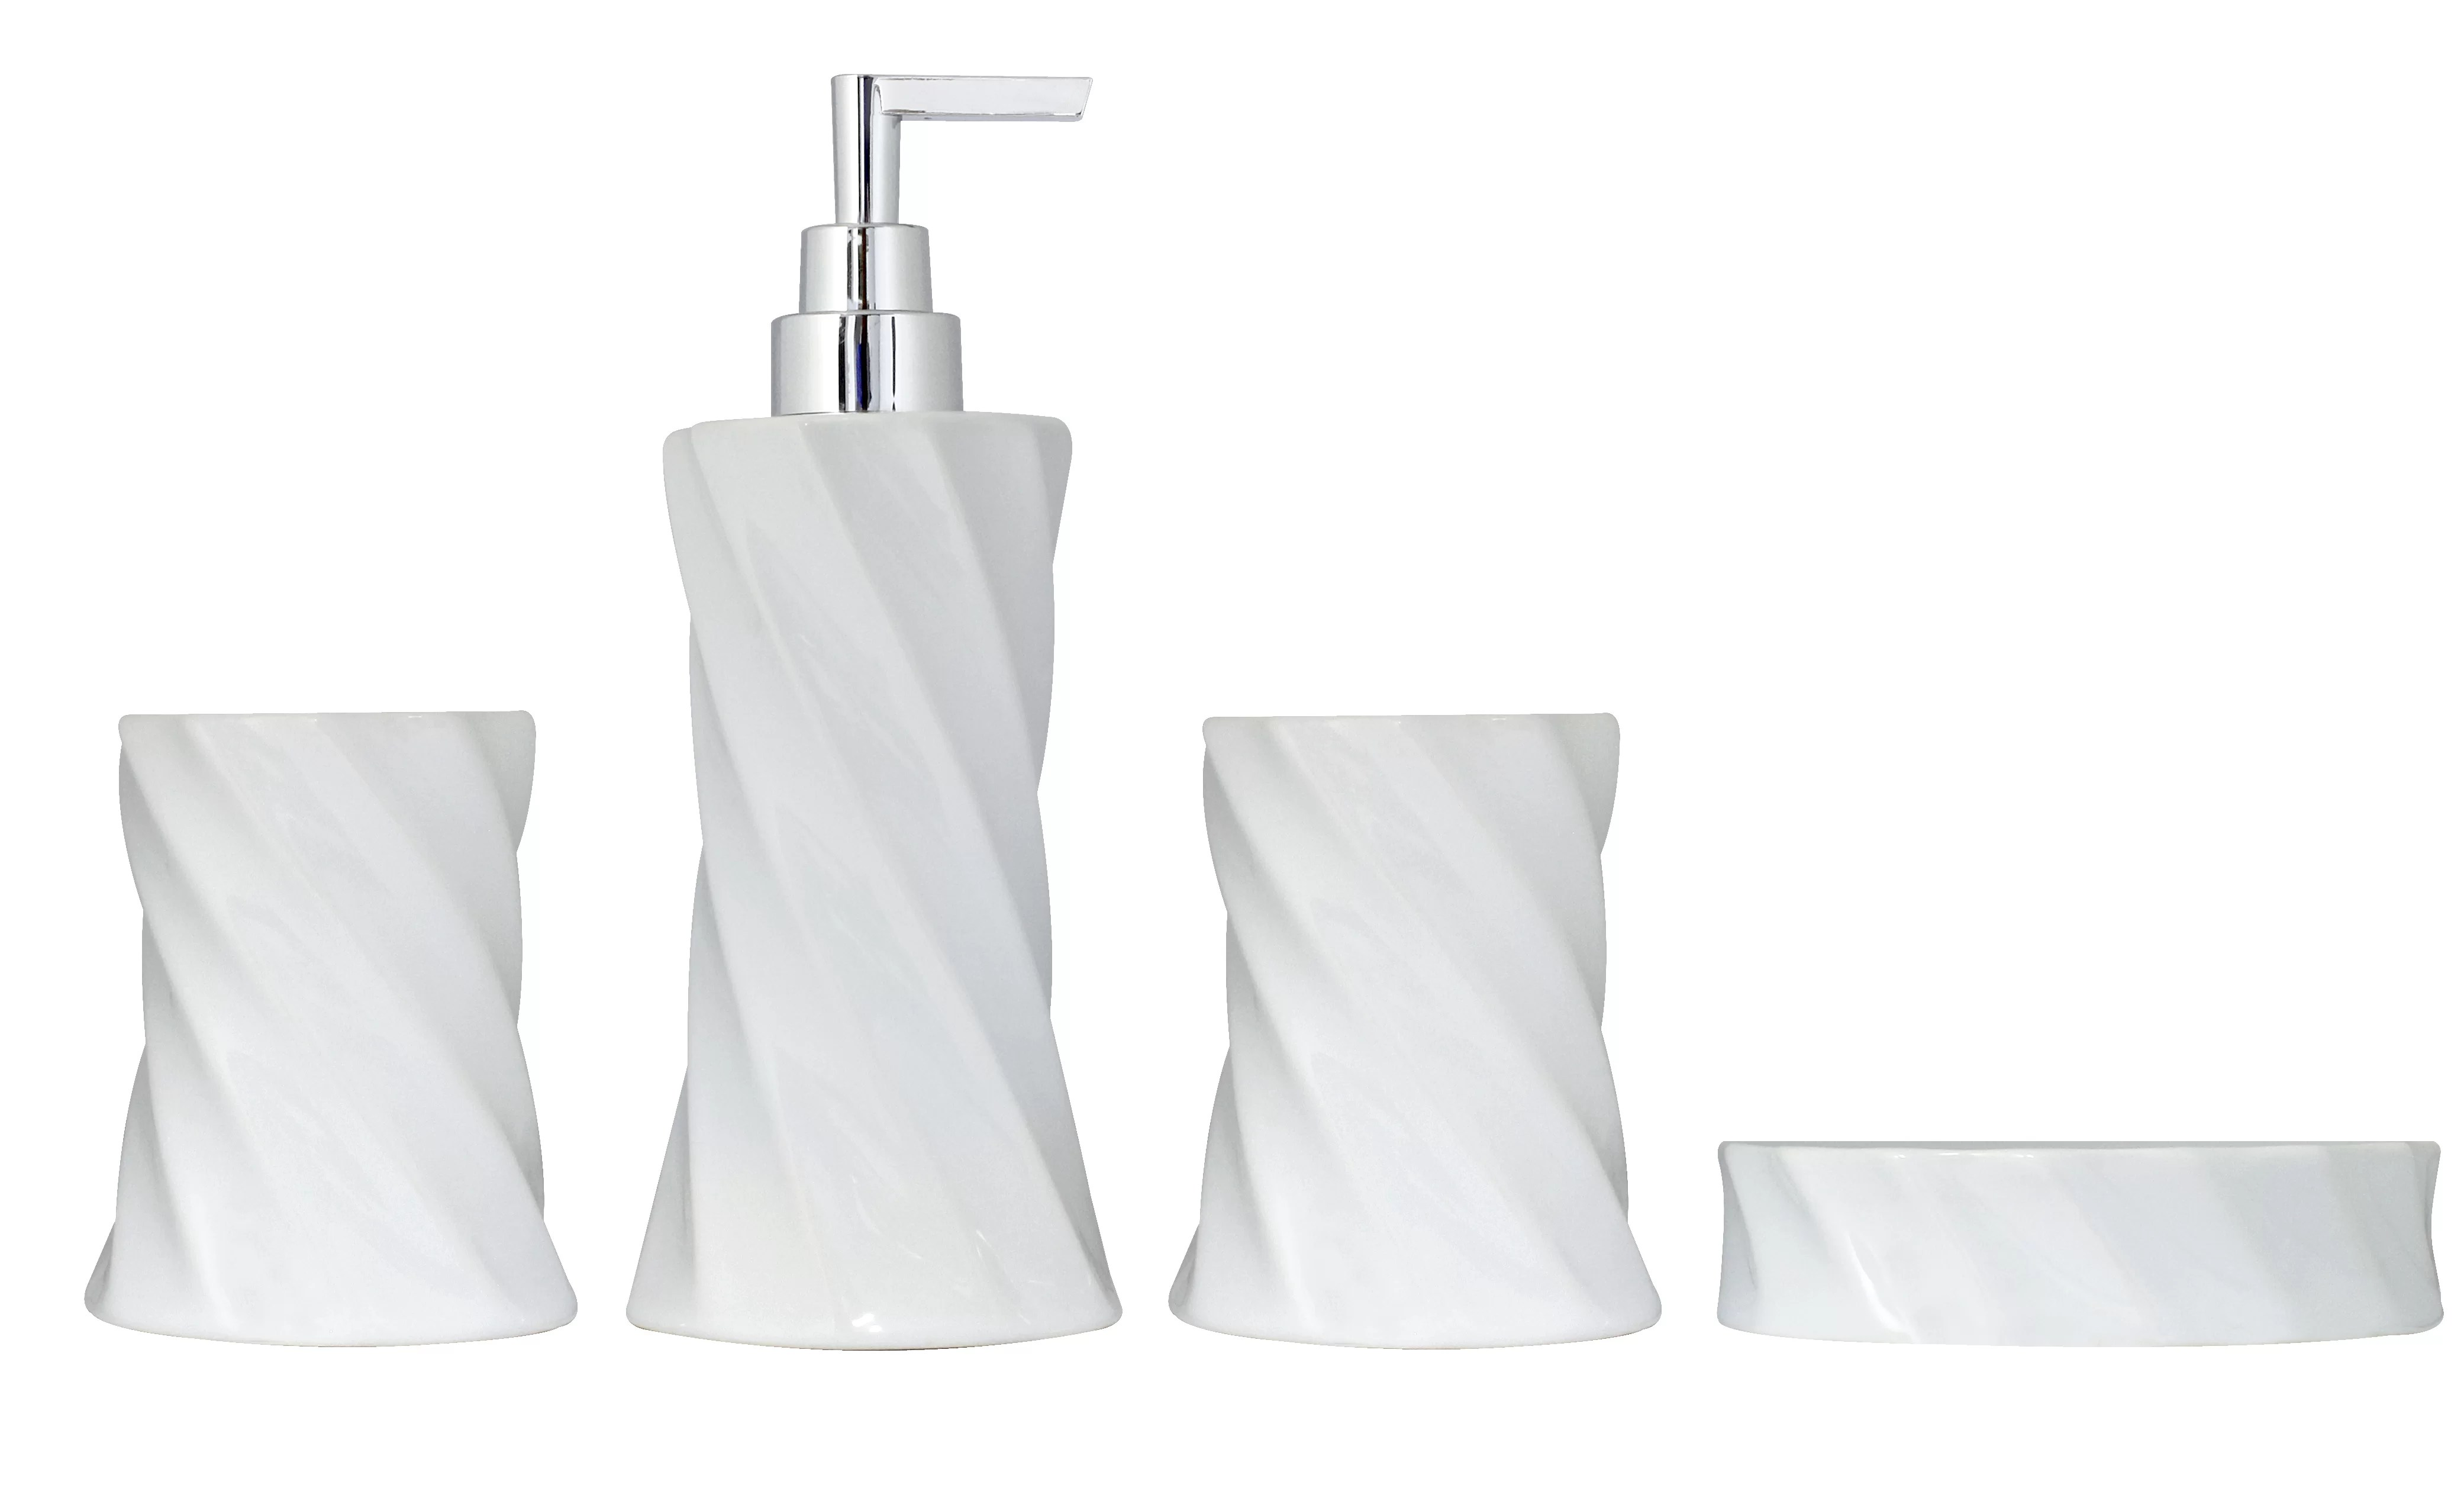 Bathroom Accessories 4 Piece Flora Series Bathroom Accessories Set